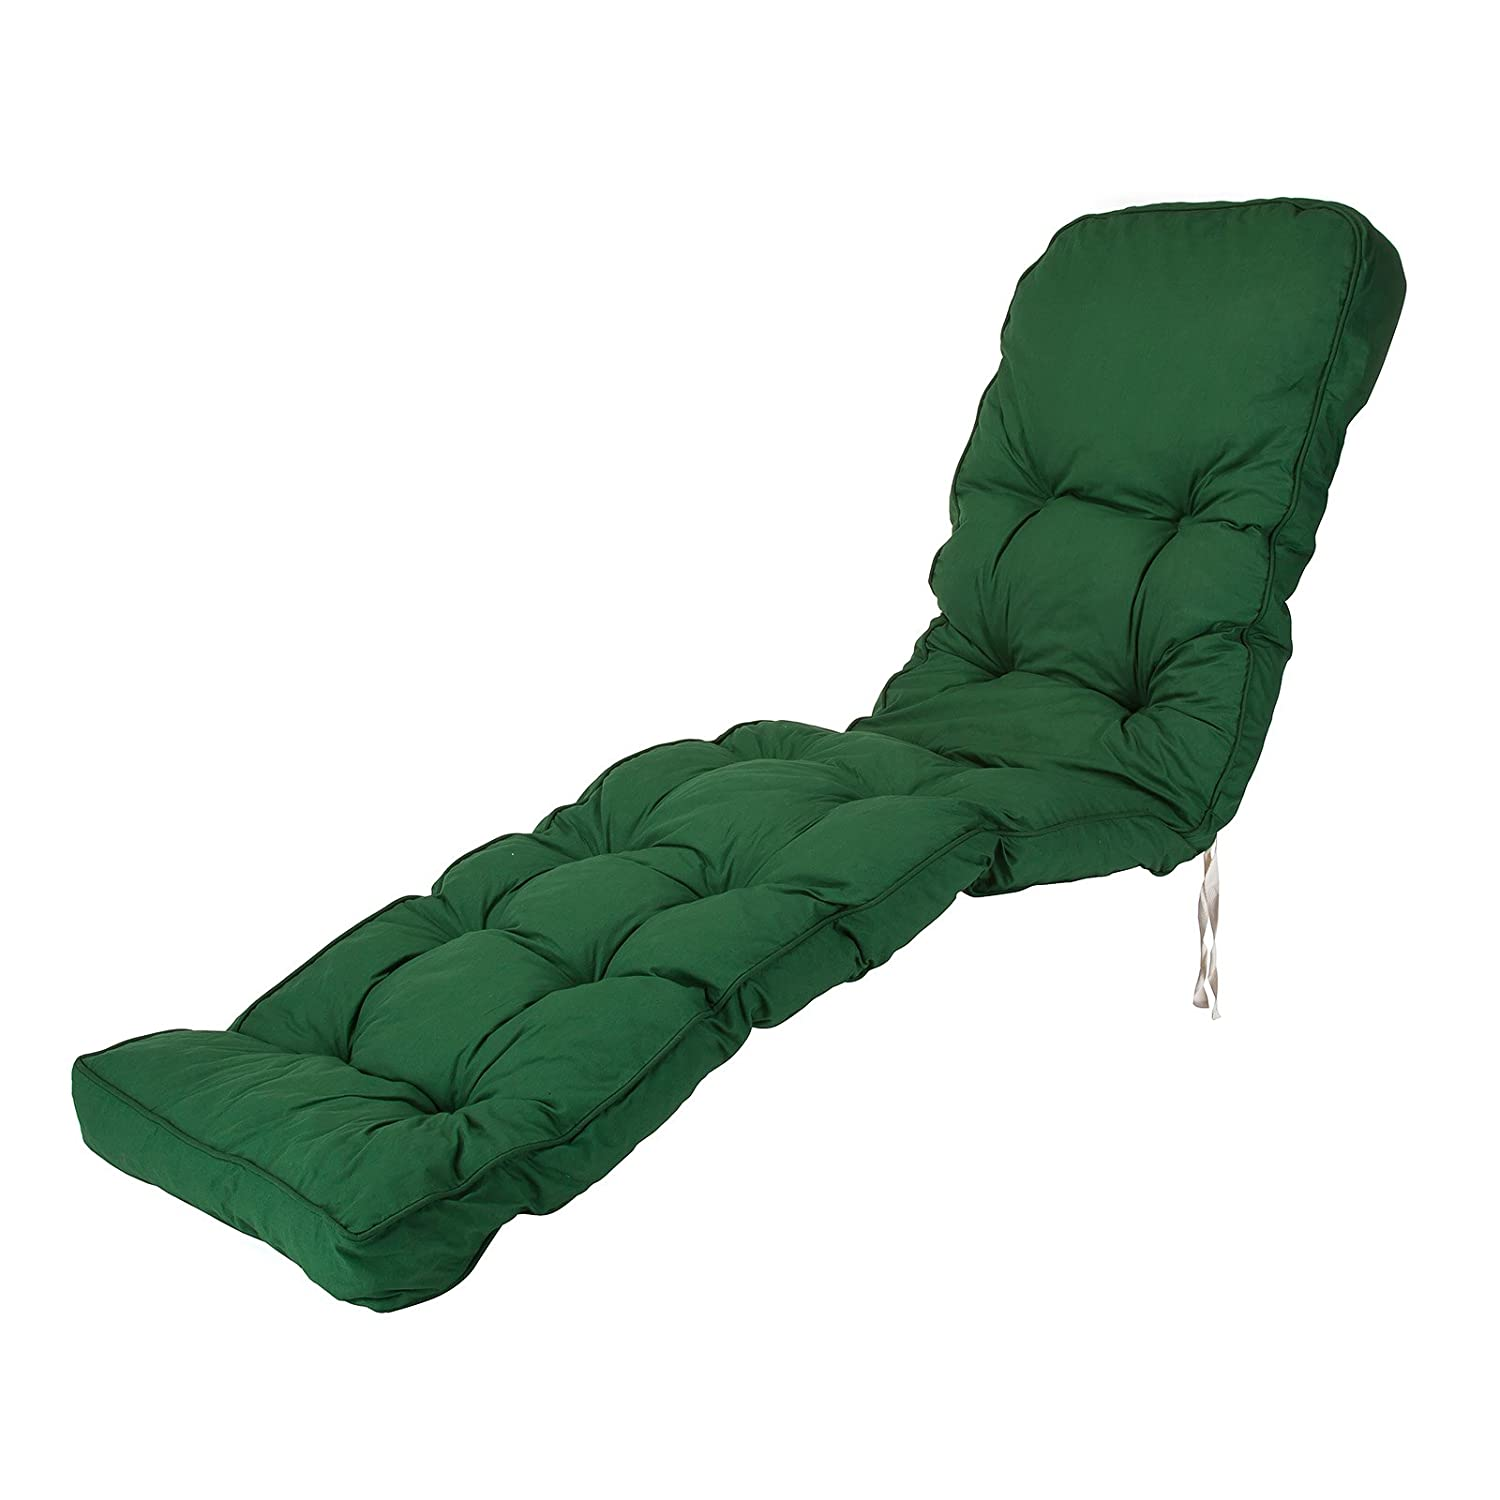 Replacement Classic Outdoor Garden Sun Lounger Chair Cushion - Choice of Prints (Green) Alfresia